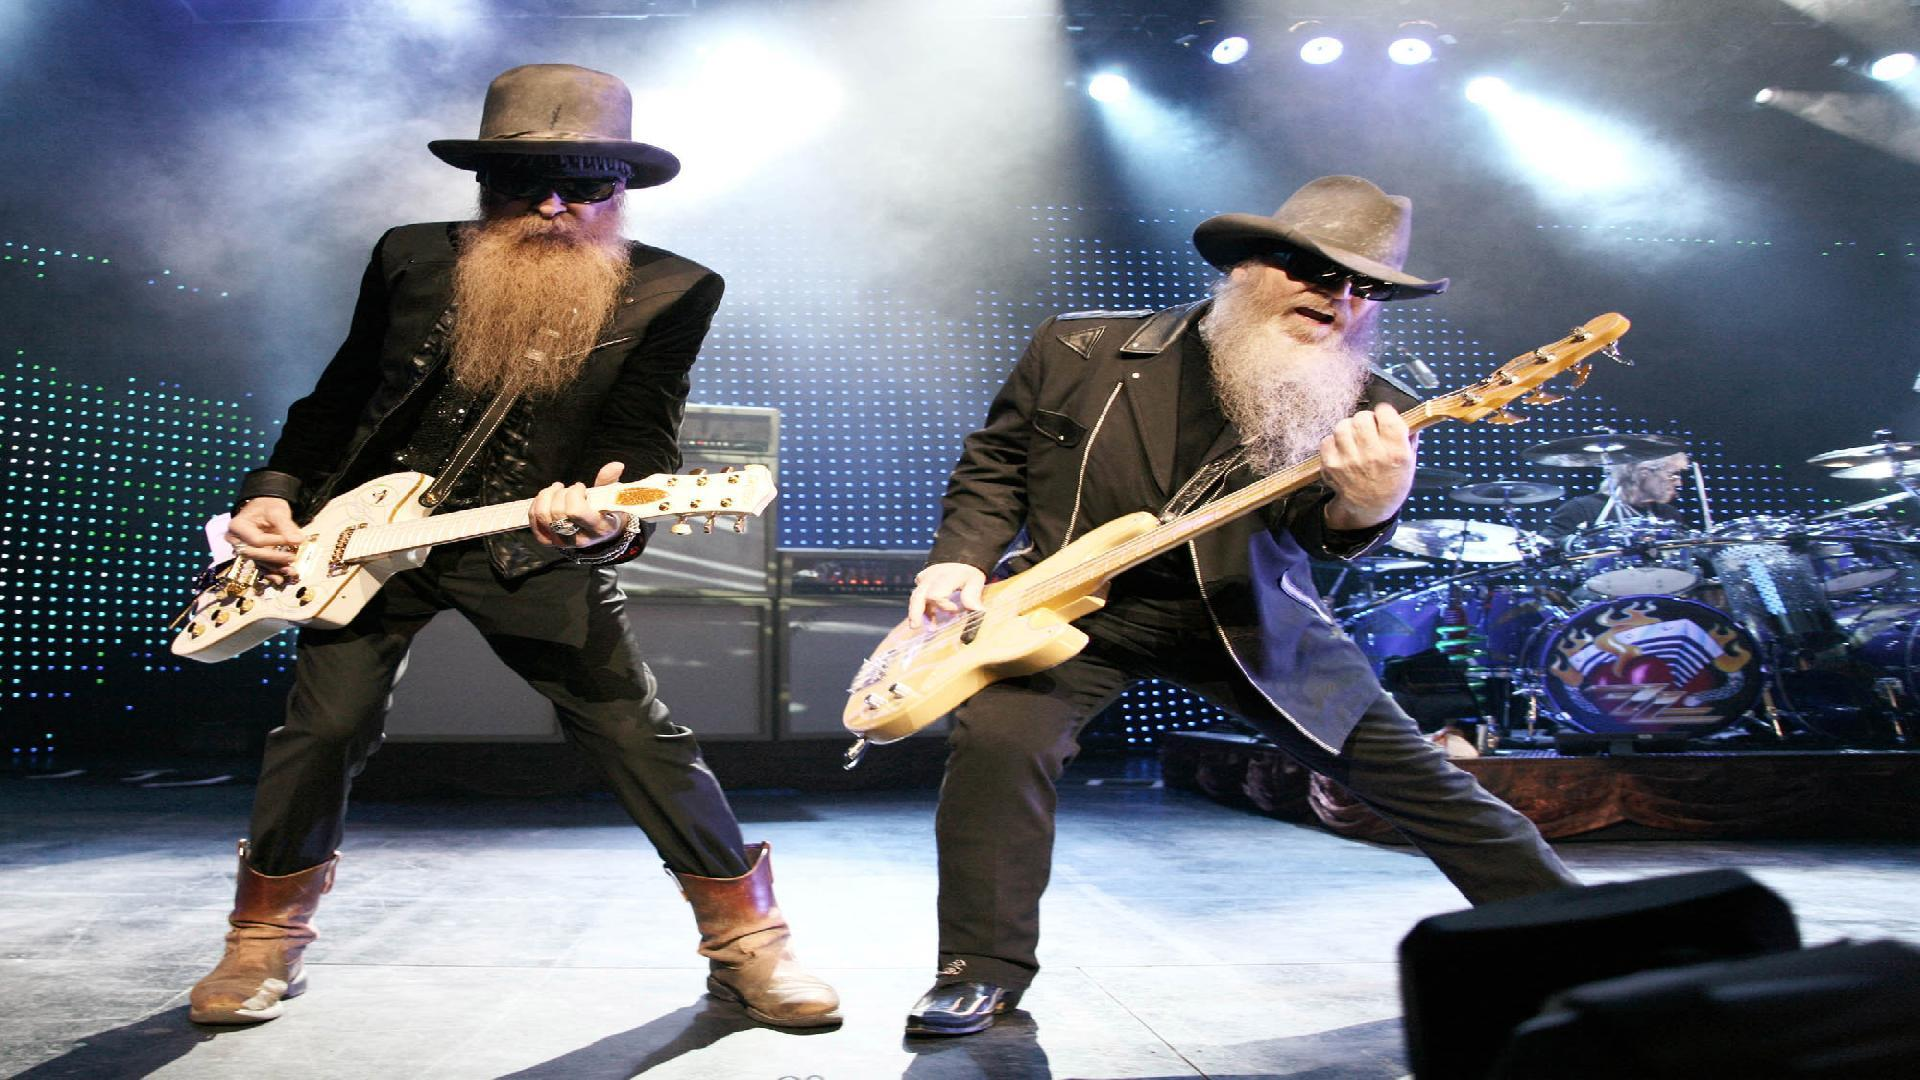 zz top лучшееzz top скачать, zz top sharp dressed man, zz top la grange, zz top слушать, zz top i gotsta get paid, zz top bad to the bone, zz top rough boy, zz top legs, zz top фото, zz top tush, zz top eliminator, zz top pincushion, zz top википедия, zz top без бороды, zz top альбомы, zz top la futura, zz top лучшее, zz top velcro fly, zz top mescalero, zz top afterburner